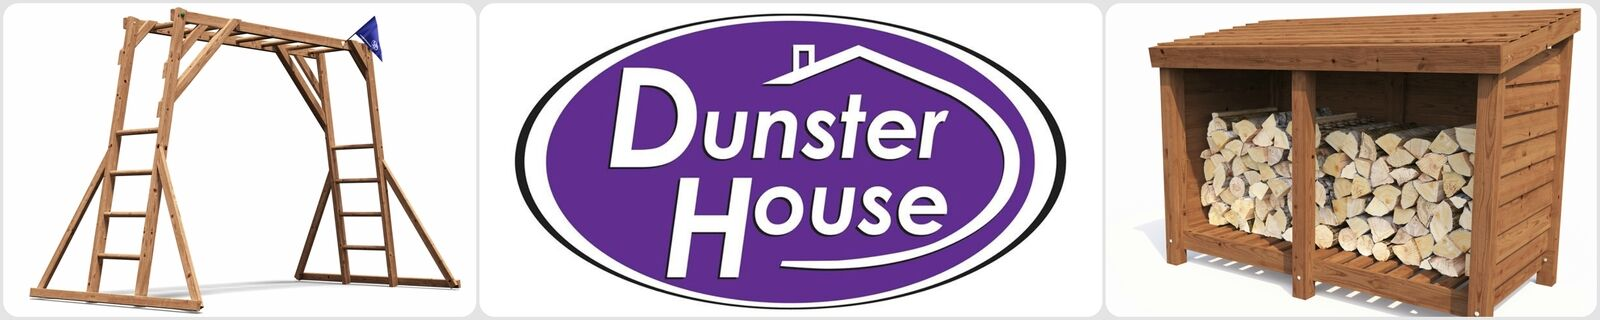 Dunster House Ltd.